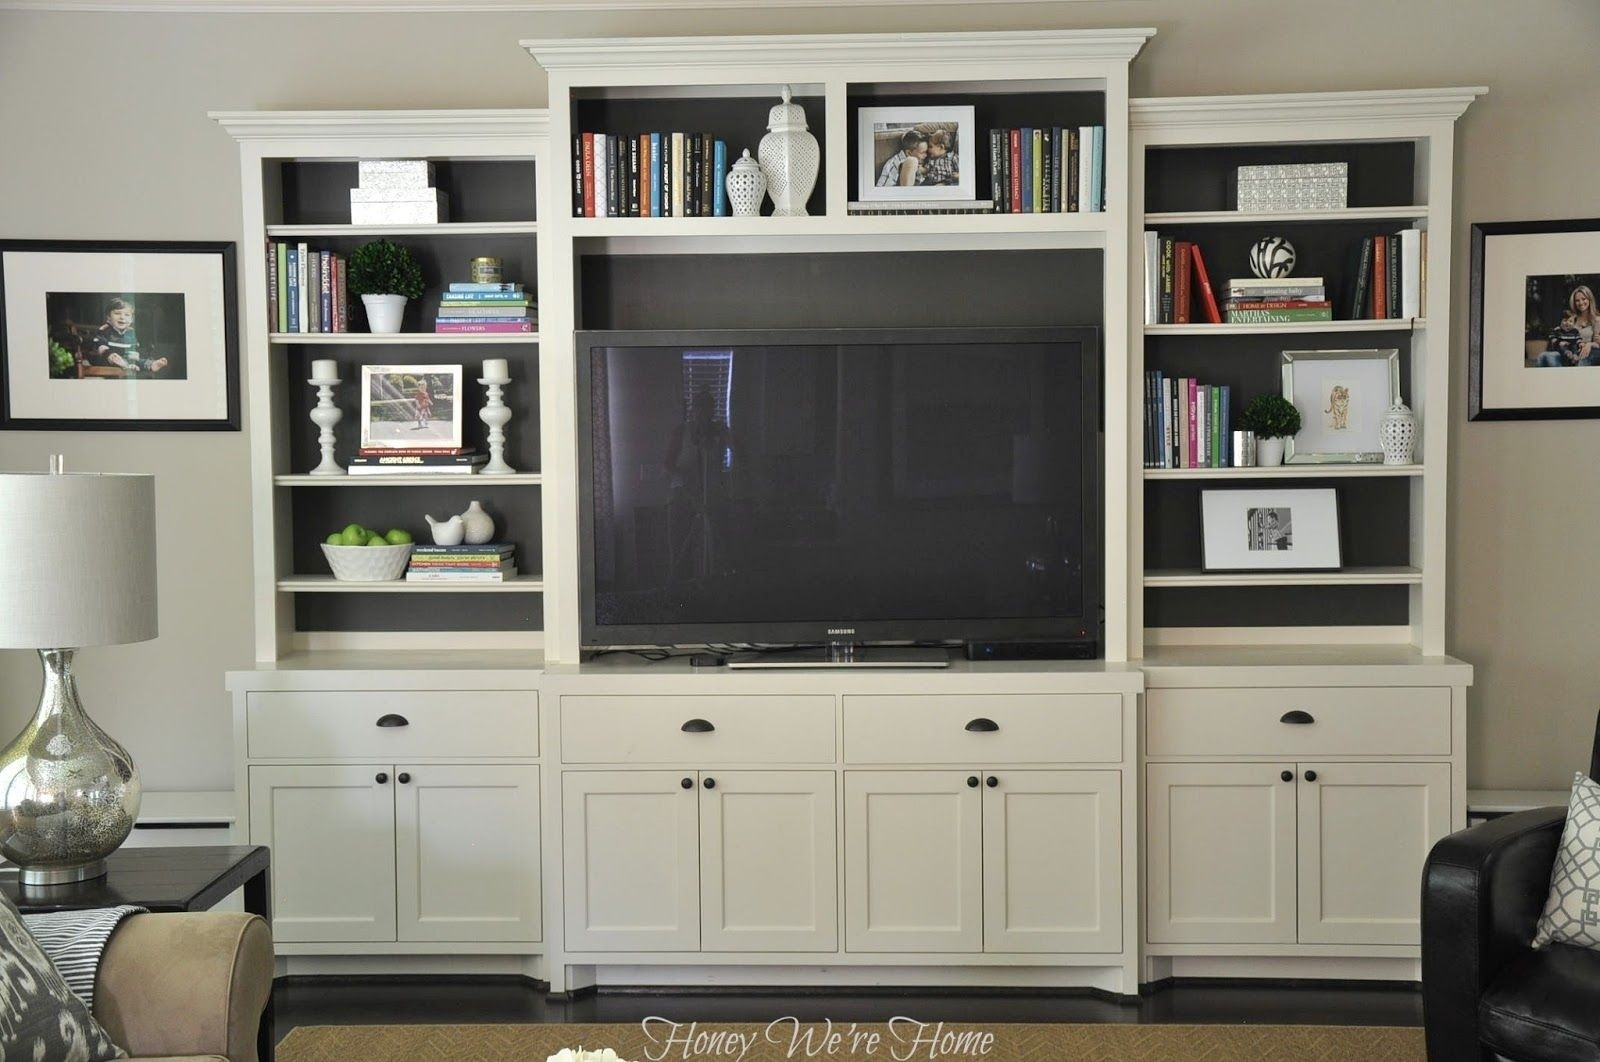 Modern Designed TV Unit Will Be Perfect Match To Light Living Room Decor.  Two Big Cabinets And Two Spacious Drawers Provides Enough Storage Space For  DVDu0027s.